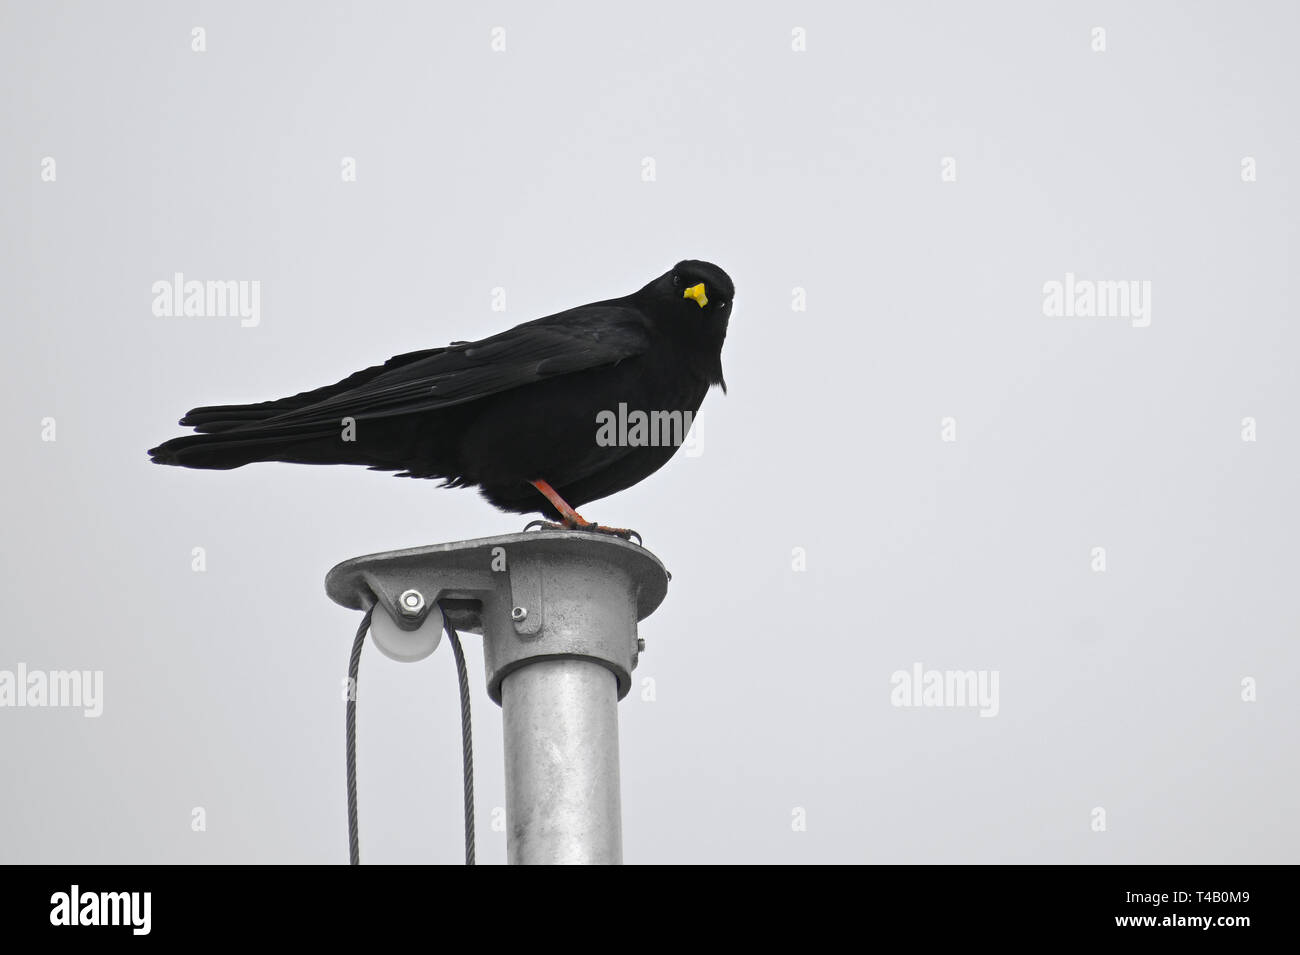 Alpine chough or yellow-billed chough (Pyrrhocorax graculus), a bird of the crow family on a flagpole against a light gray sky, copy space - Stock Image